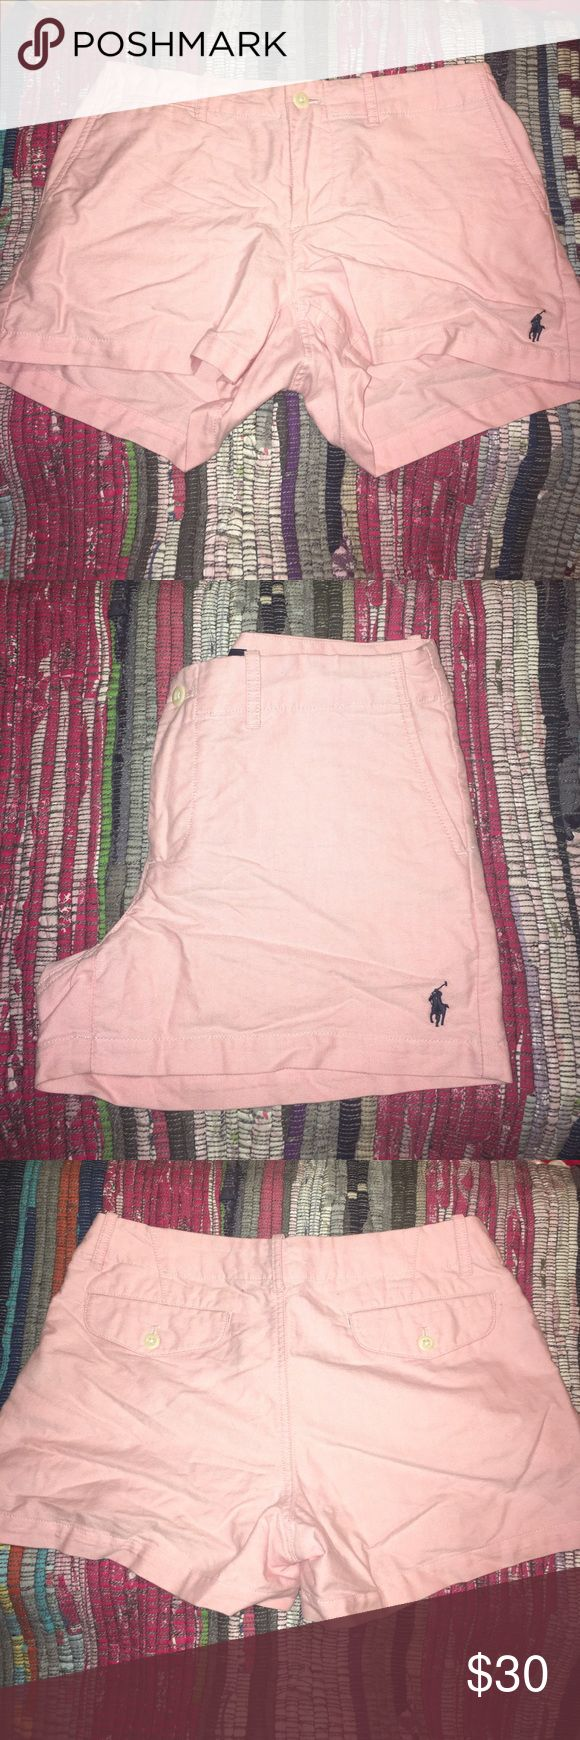 ☀️Polo Ralph Lauren Sport Light Pink Shorts☀️ Polo Ralph Lauren Sport Light Pink Shorts. Great condition. No holes, rips, or tears. Polo by Ralph Lauren Shorts